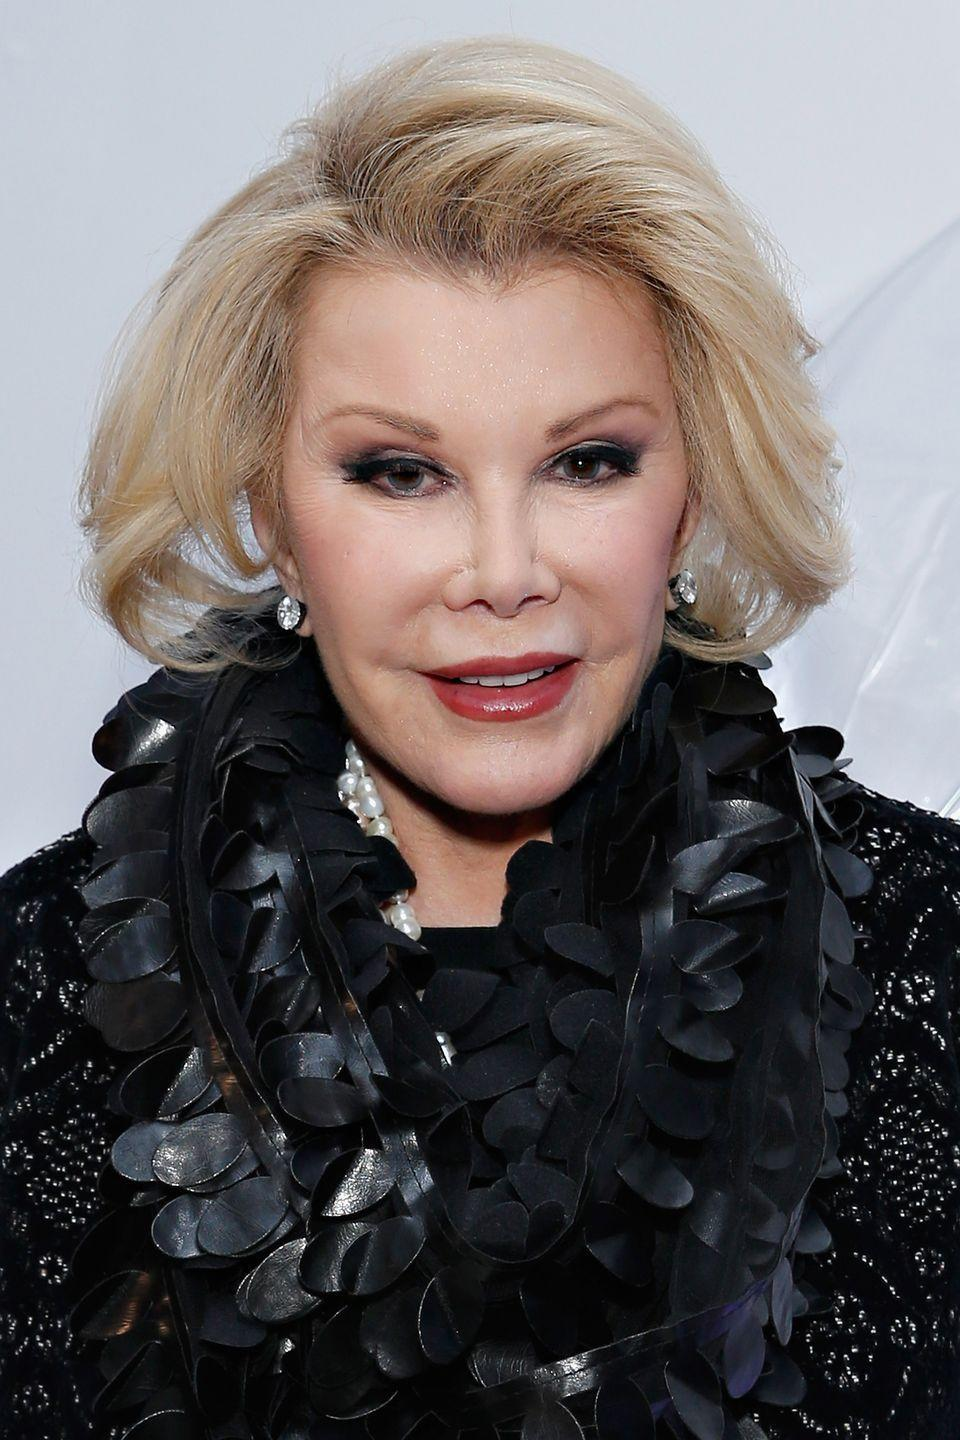 "<p>Joan Rivers was the queen of plastic surgeries, most of which she loved. But the late comedian said she didn't like the results of her liposuction. ""I didn't check out the doctor and the result wasn't smooth,"" <a href=""https://www.slice.ca/beauty/photos/stars-who-regret-their-plastic-surgery/#!celebs-plastic-surgery-regrets-joan-rivers"" rel=""nofollow noopener"" target=""_blank"" data-ylk=""slk:she said"" class=""link rapid-noclick-resp"">she said</a>.</p>"